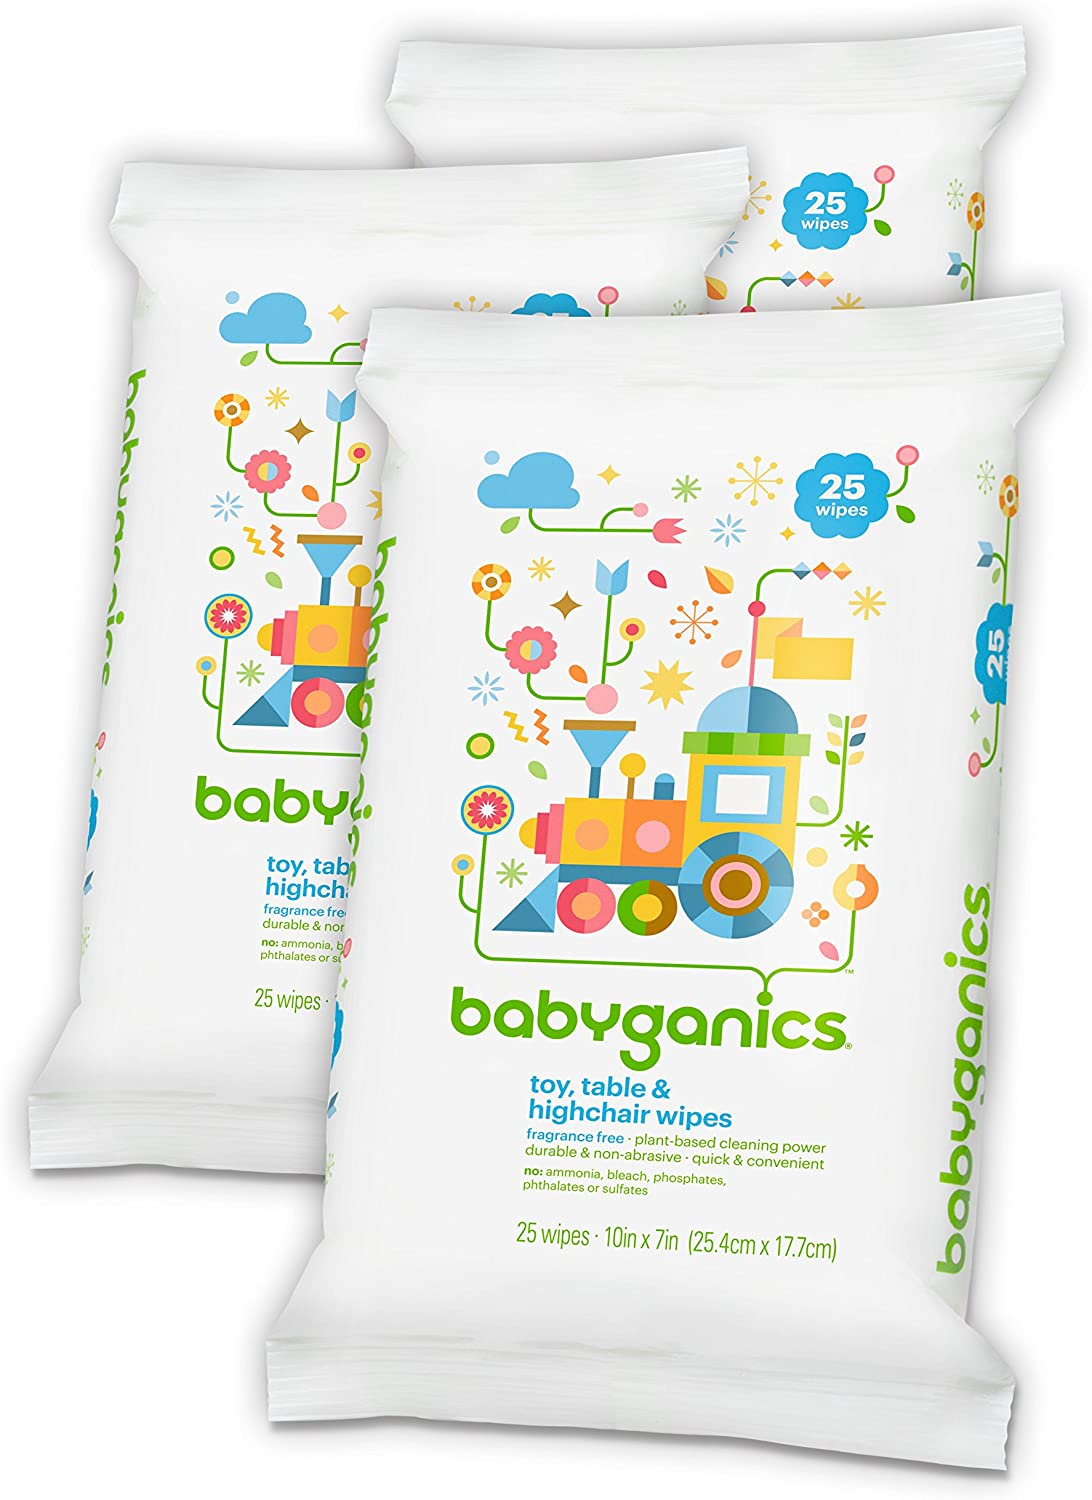 Babyganics Toy and Table Wipes, 75 count, (3 Packs of 25), Packaging May Vary